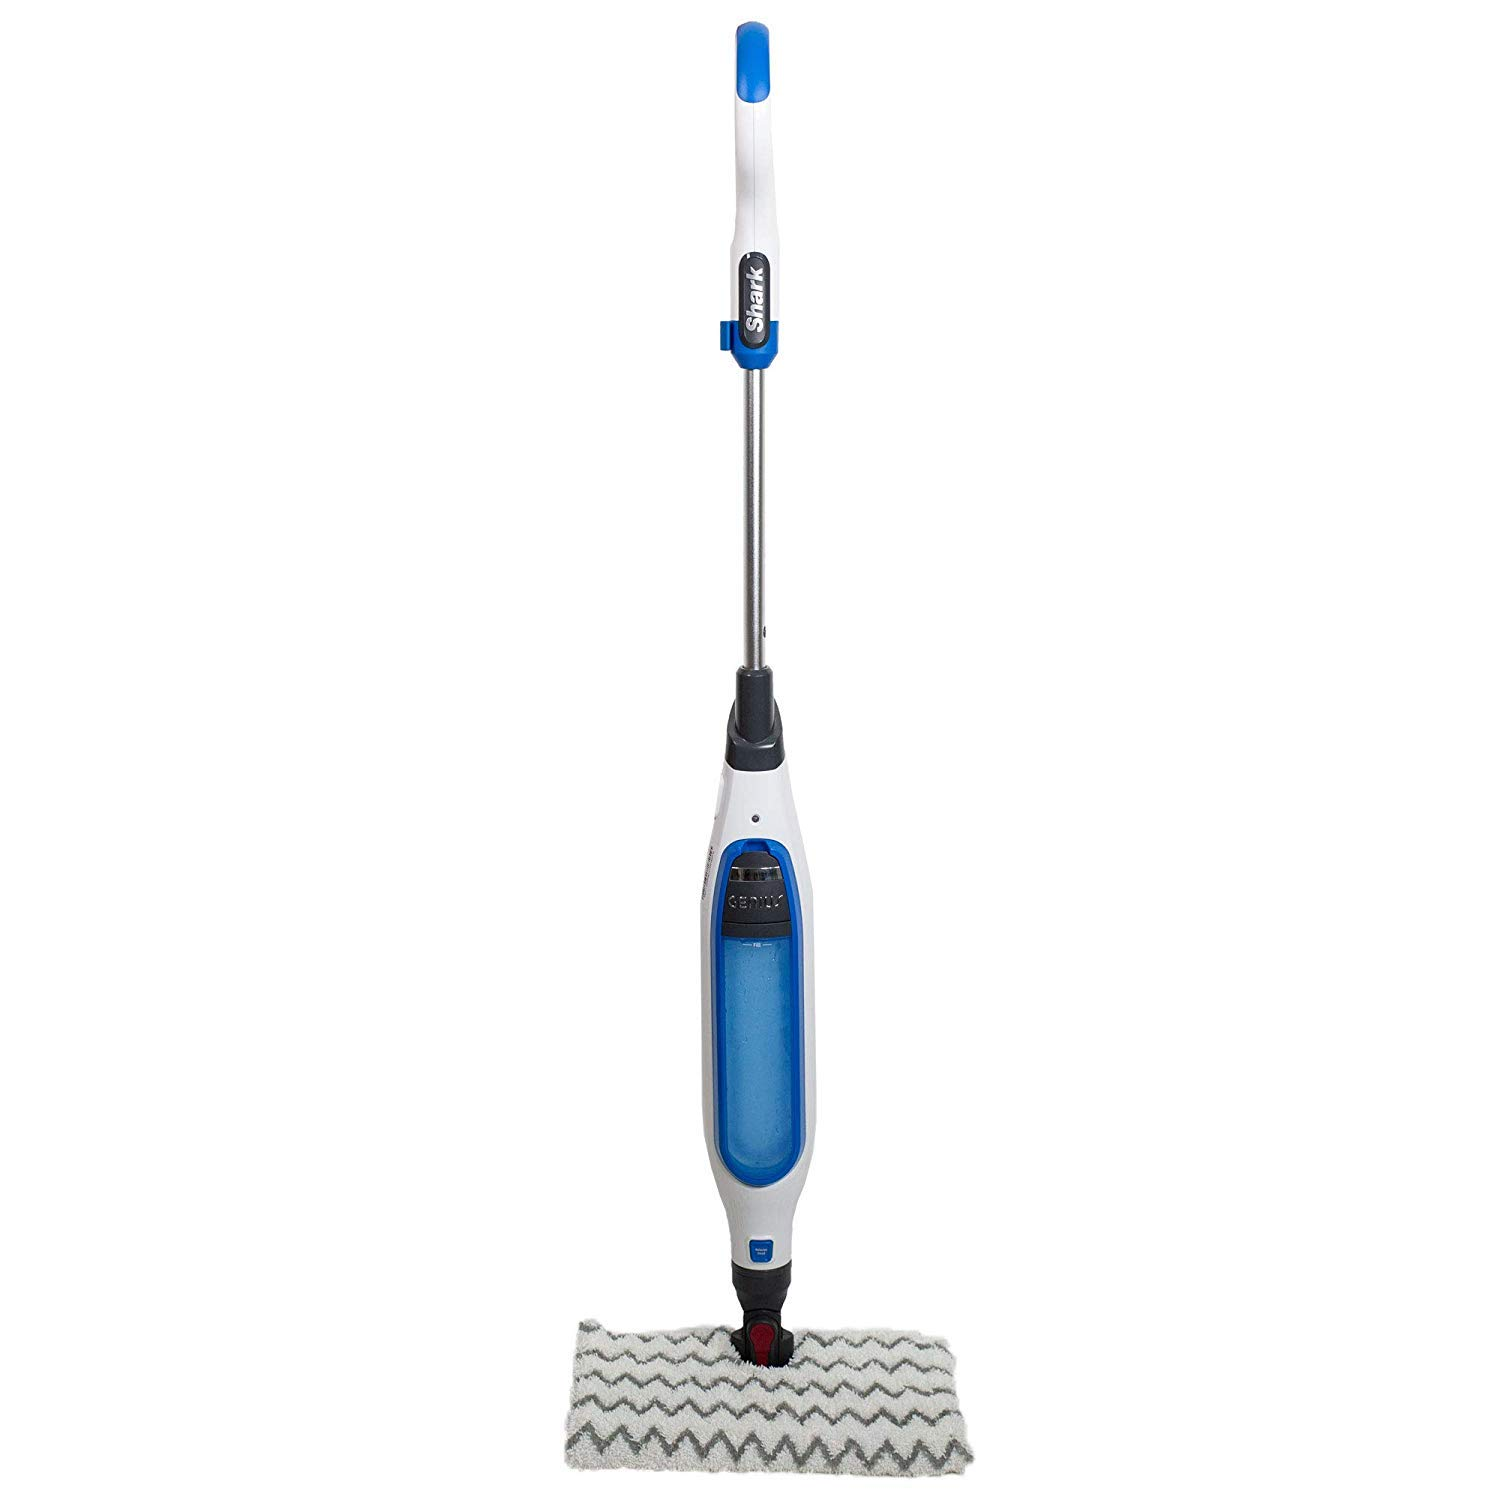 Shark Genius Sanitizing Steam Pocket Mop System S5001 Renewed Buy Online In Albania Amazon Renewed Products In Albania See Prices Reviews And Free Delivery Over 7 500 Lek Desertcart